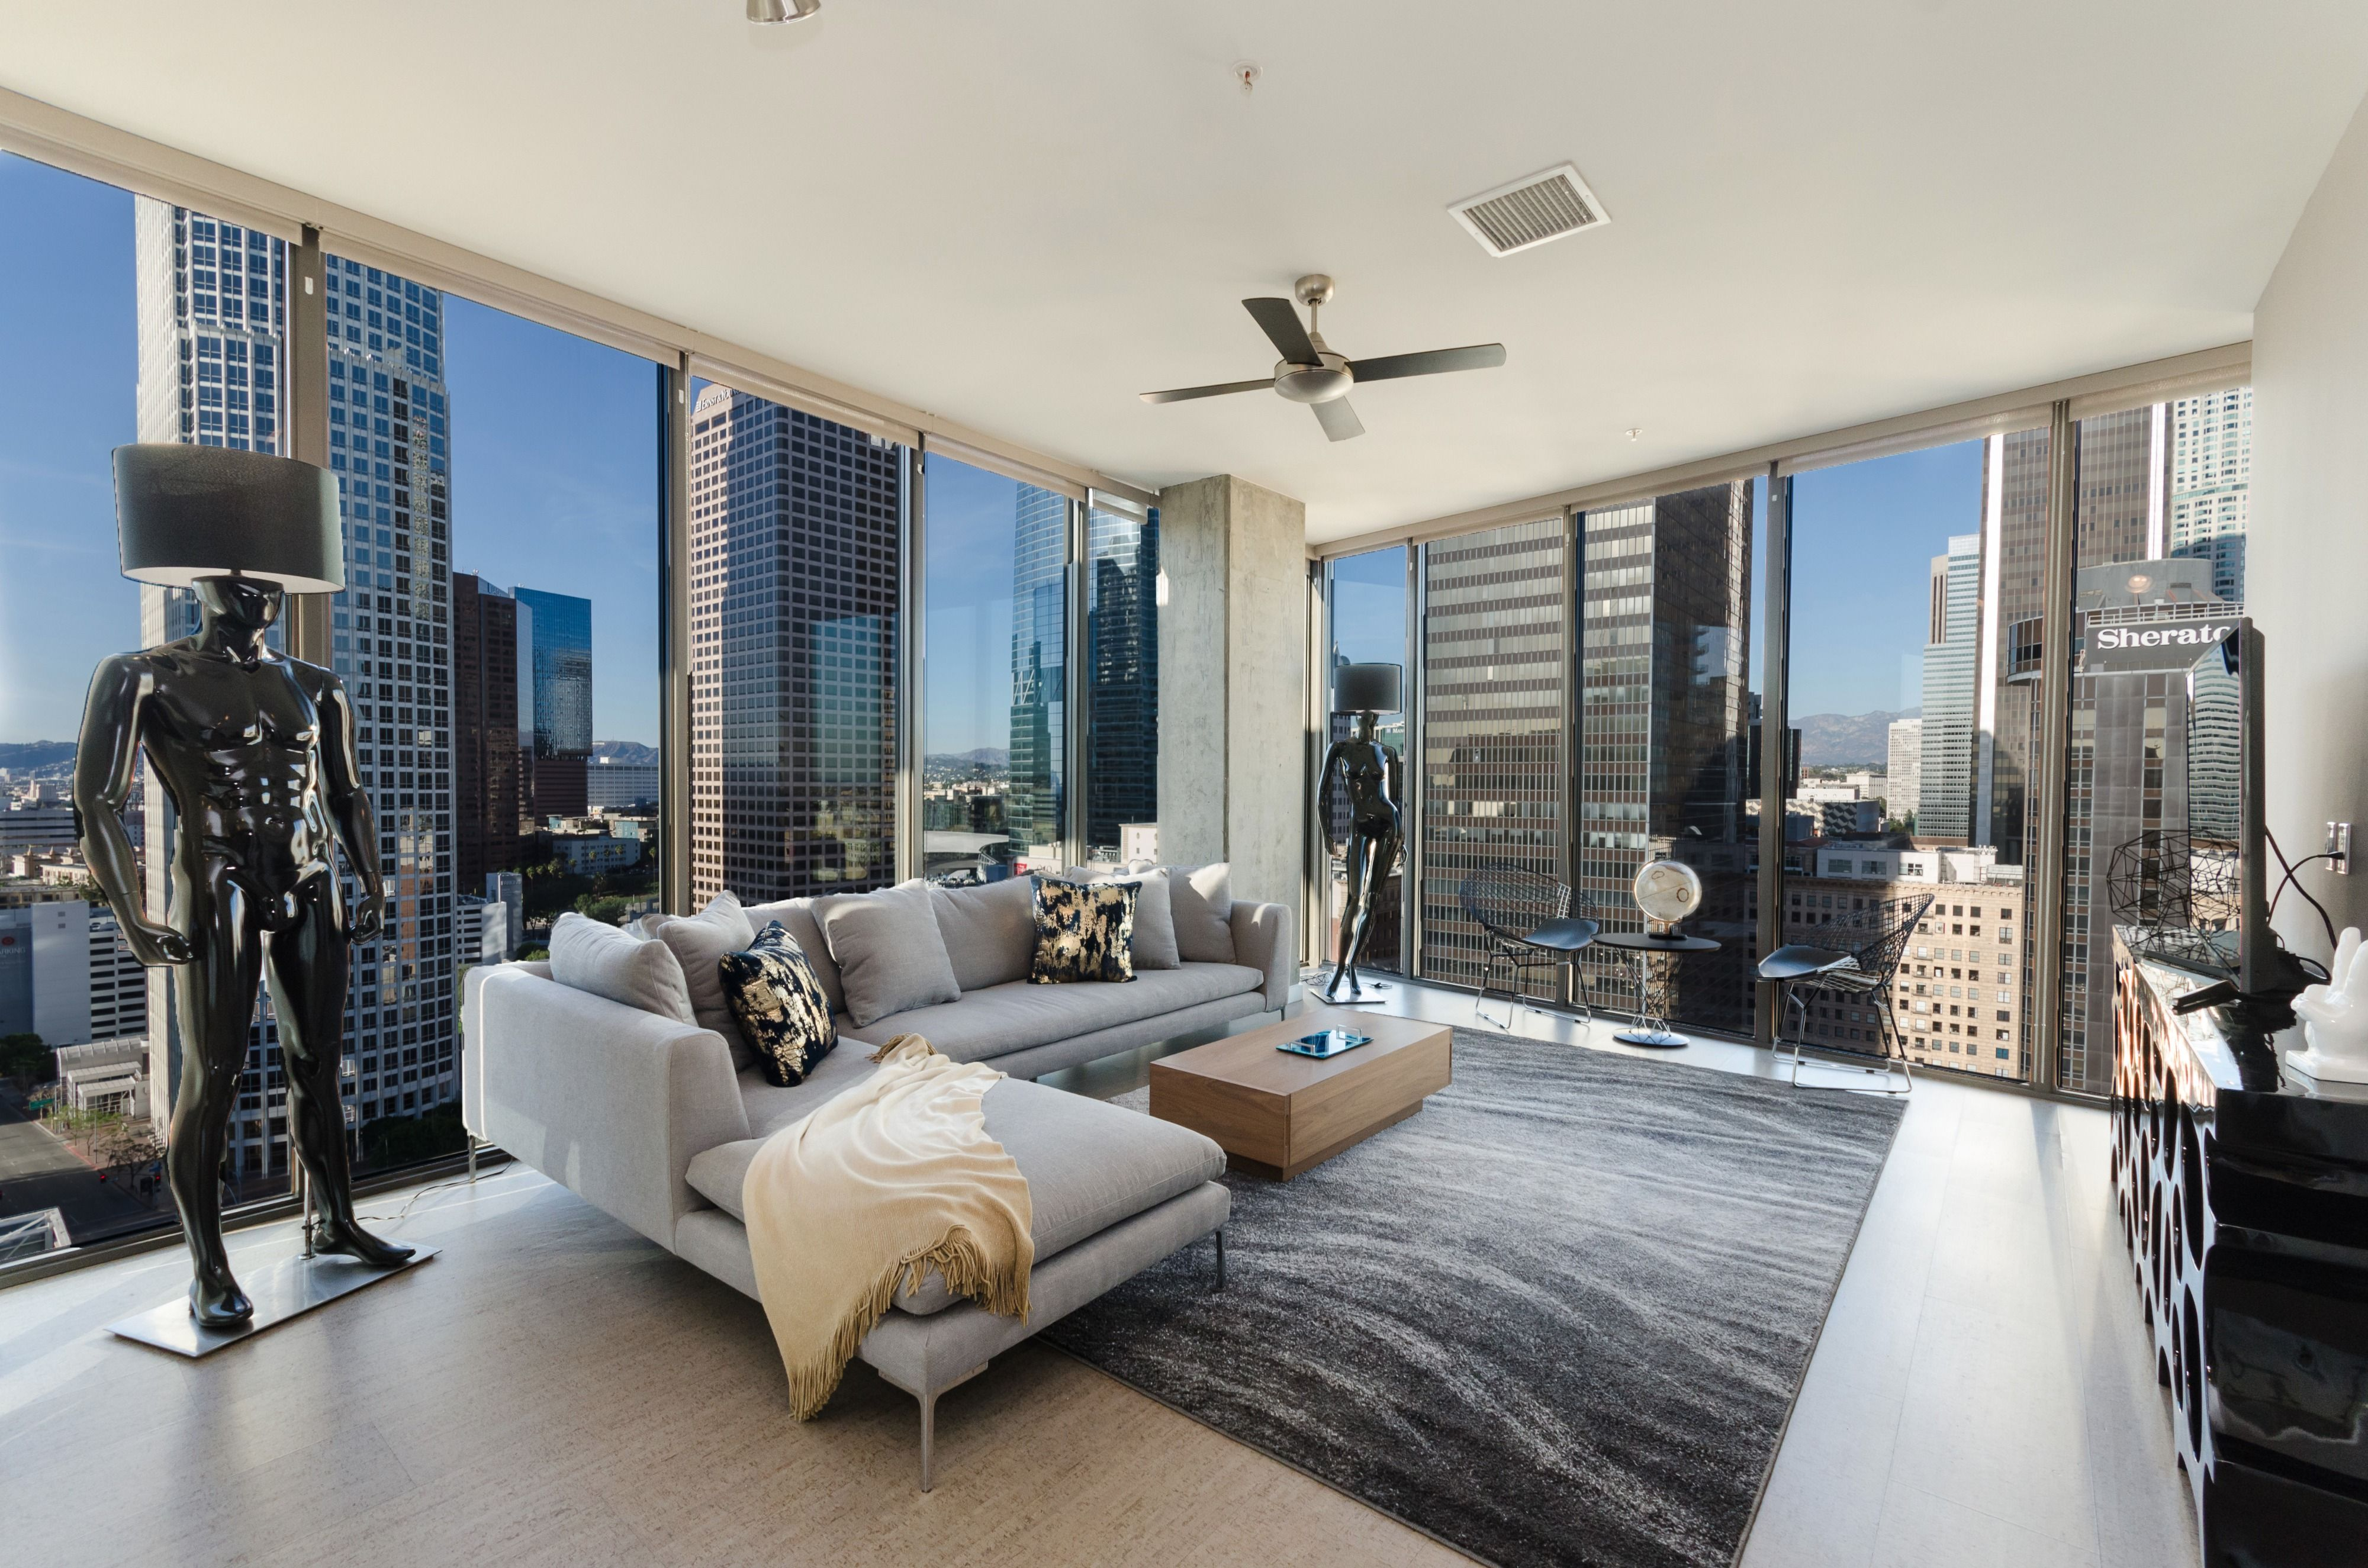 Check Out This Great Off Site Space On Peerspace Com Top Level Photoshoot Penthouse In Los Angeles Penthouse Living Apartment View Luxury Apartments